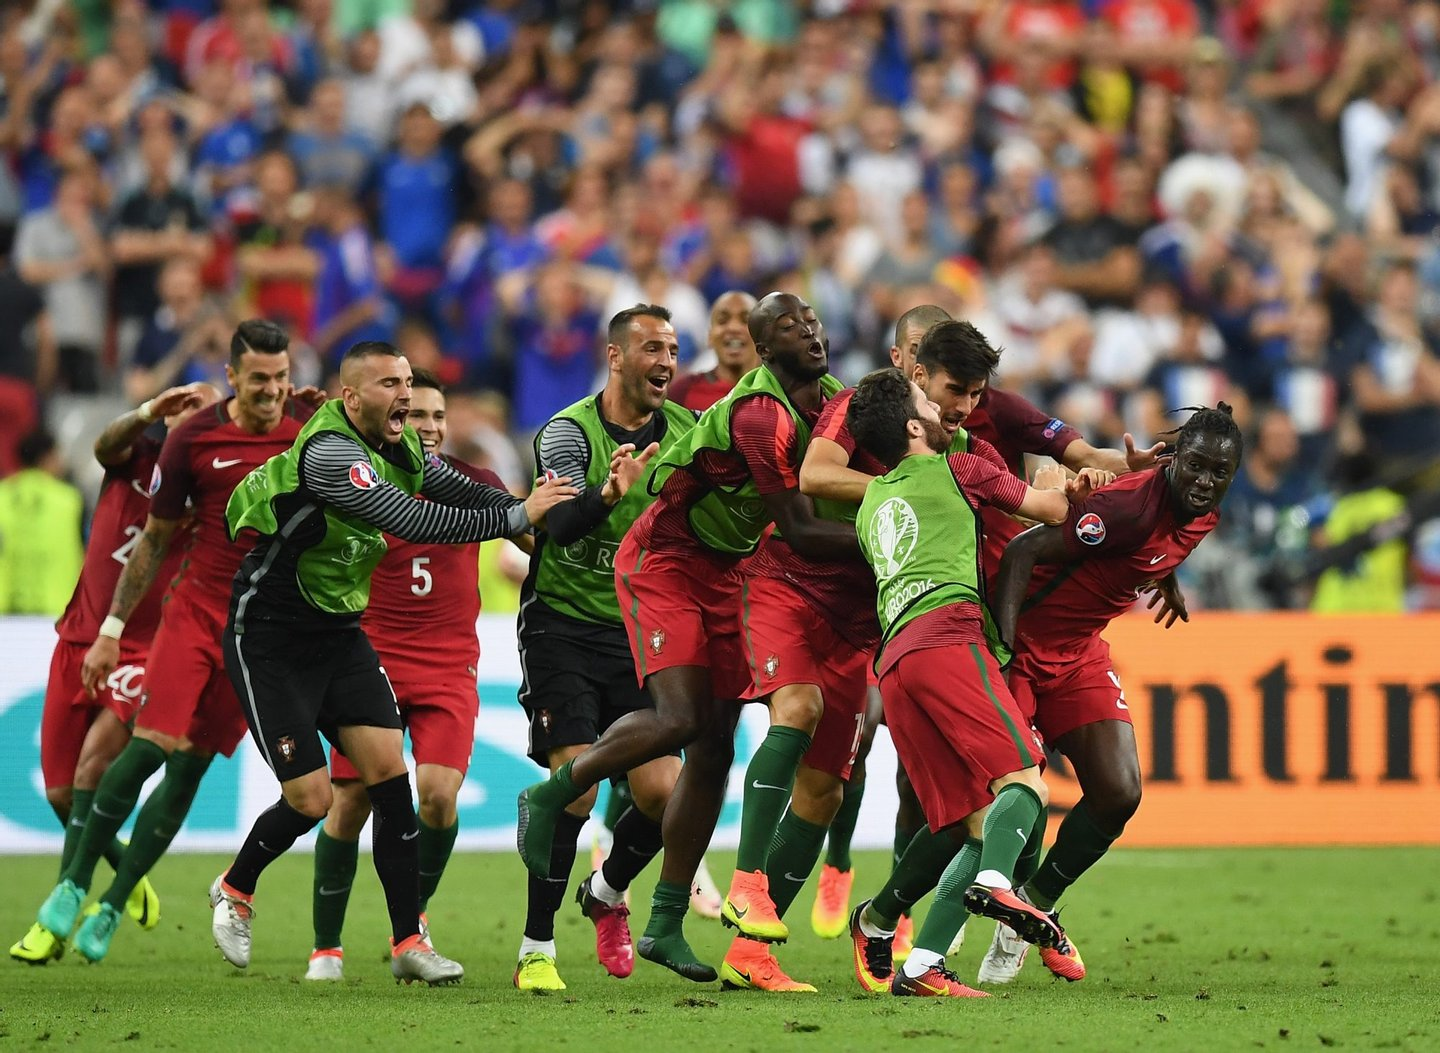 PARIS, FRANCE - JULY 10: Eder (1st R) of Portugal celebrates scoring the opening goal with his team mates during the UEFA EURO 2016 Final match between Portugal and France at Stade de France on July 10, 2016 in Paris, France. (Photo by Laurence Griffiths/Getty Images)